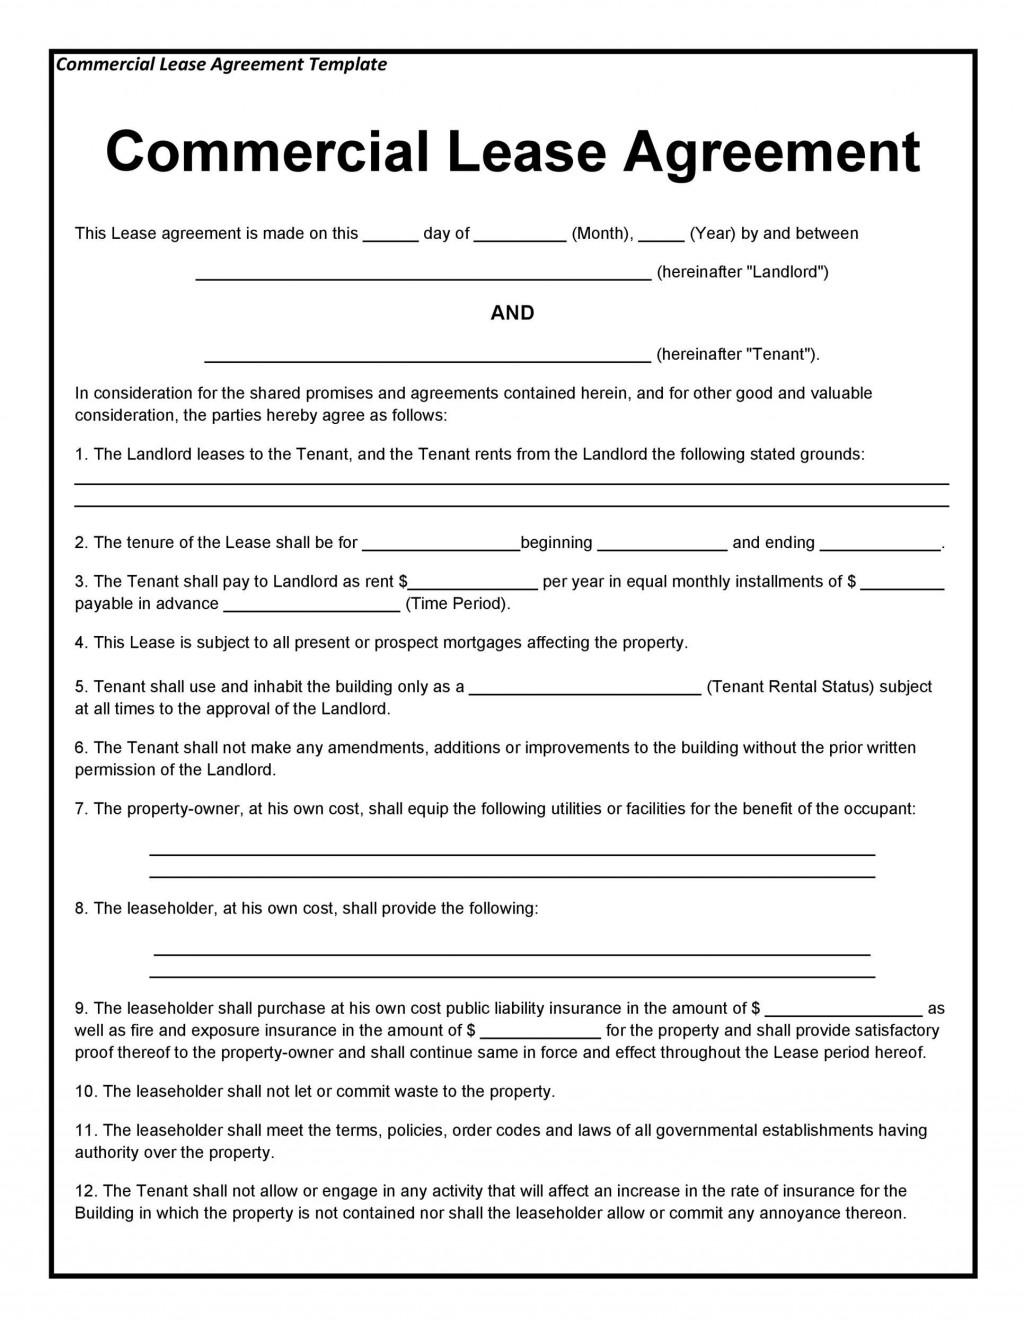 004 Best Template For Lease Agreement Free Photo  Printable Room Rental Commercial Uk FloridaLarge